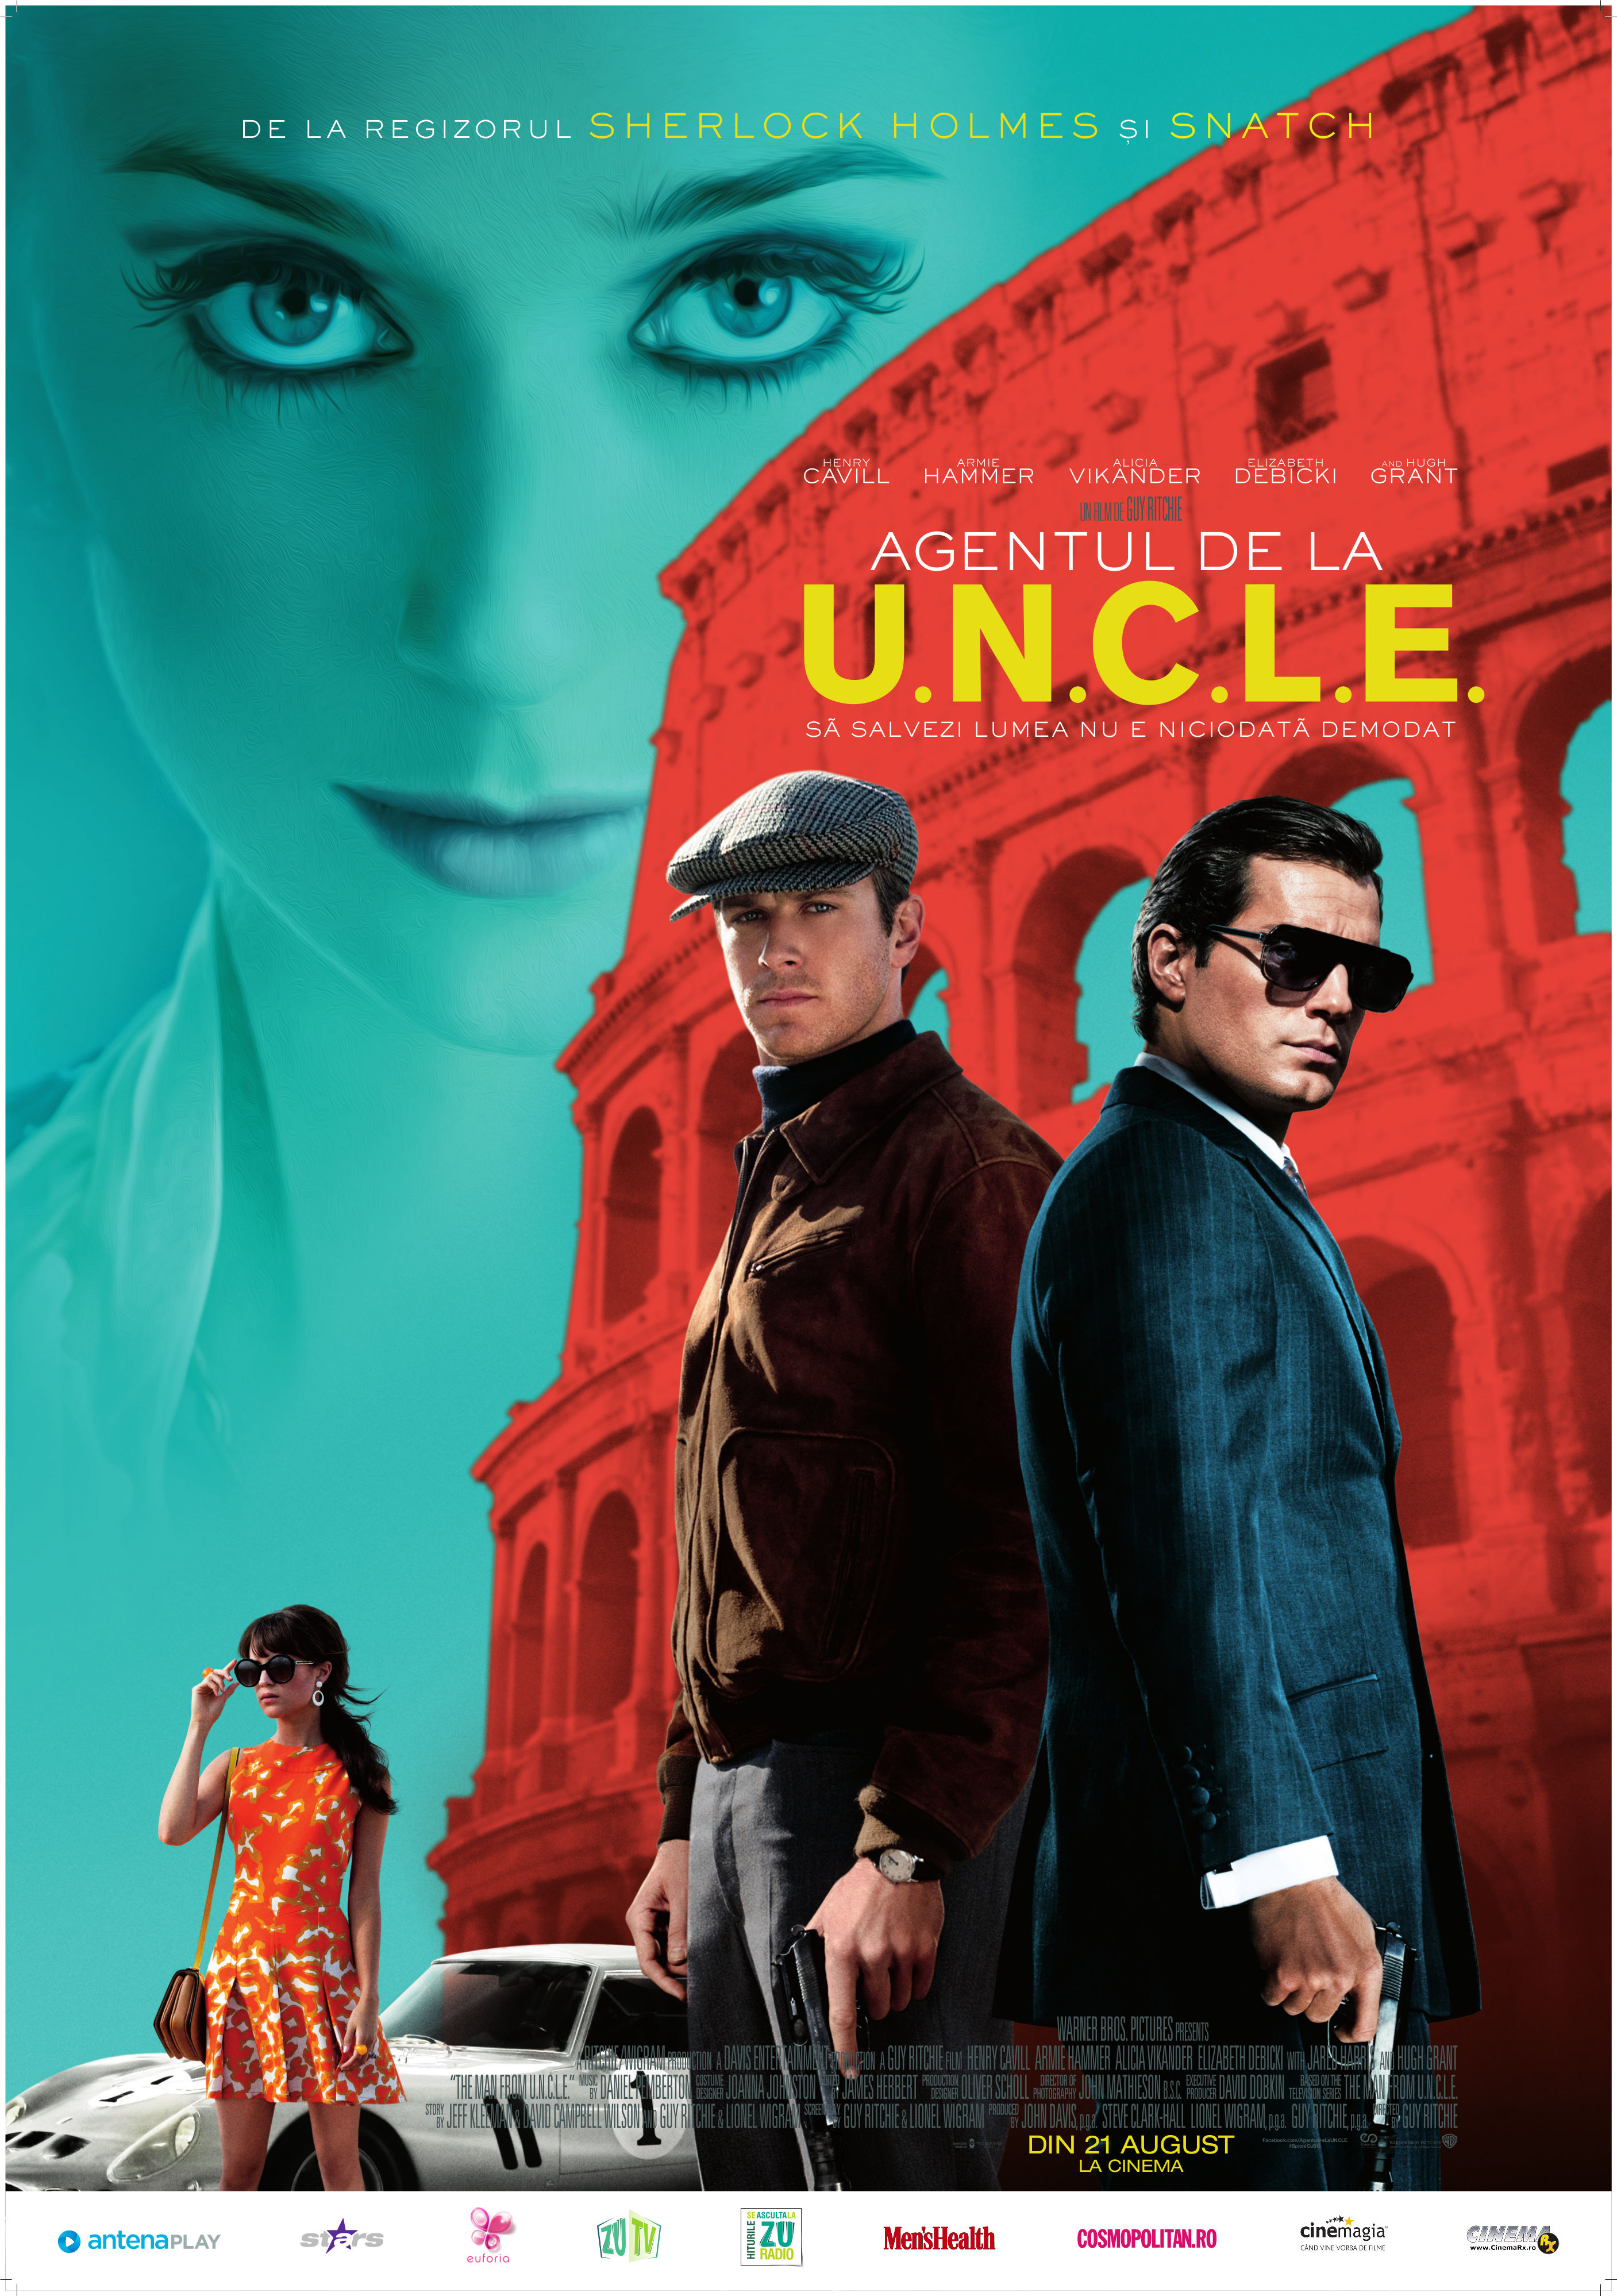 Agentul de la U.N.C.L.E. / The Man from U.N.C.L.E. (Premiera)